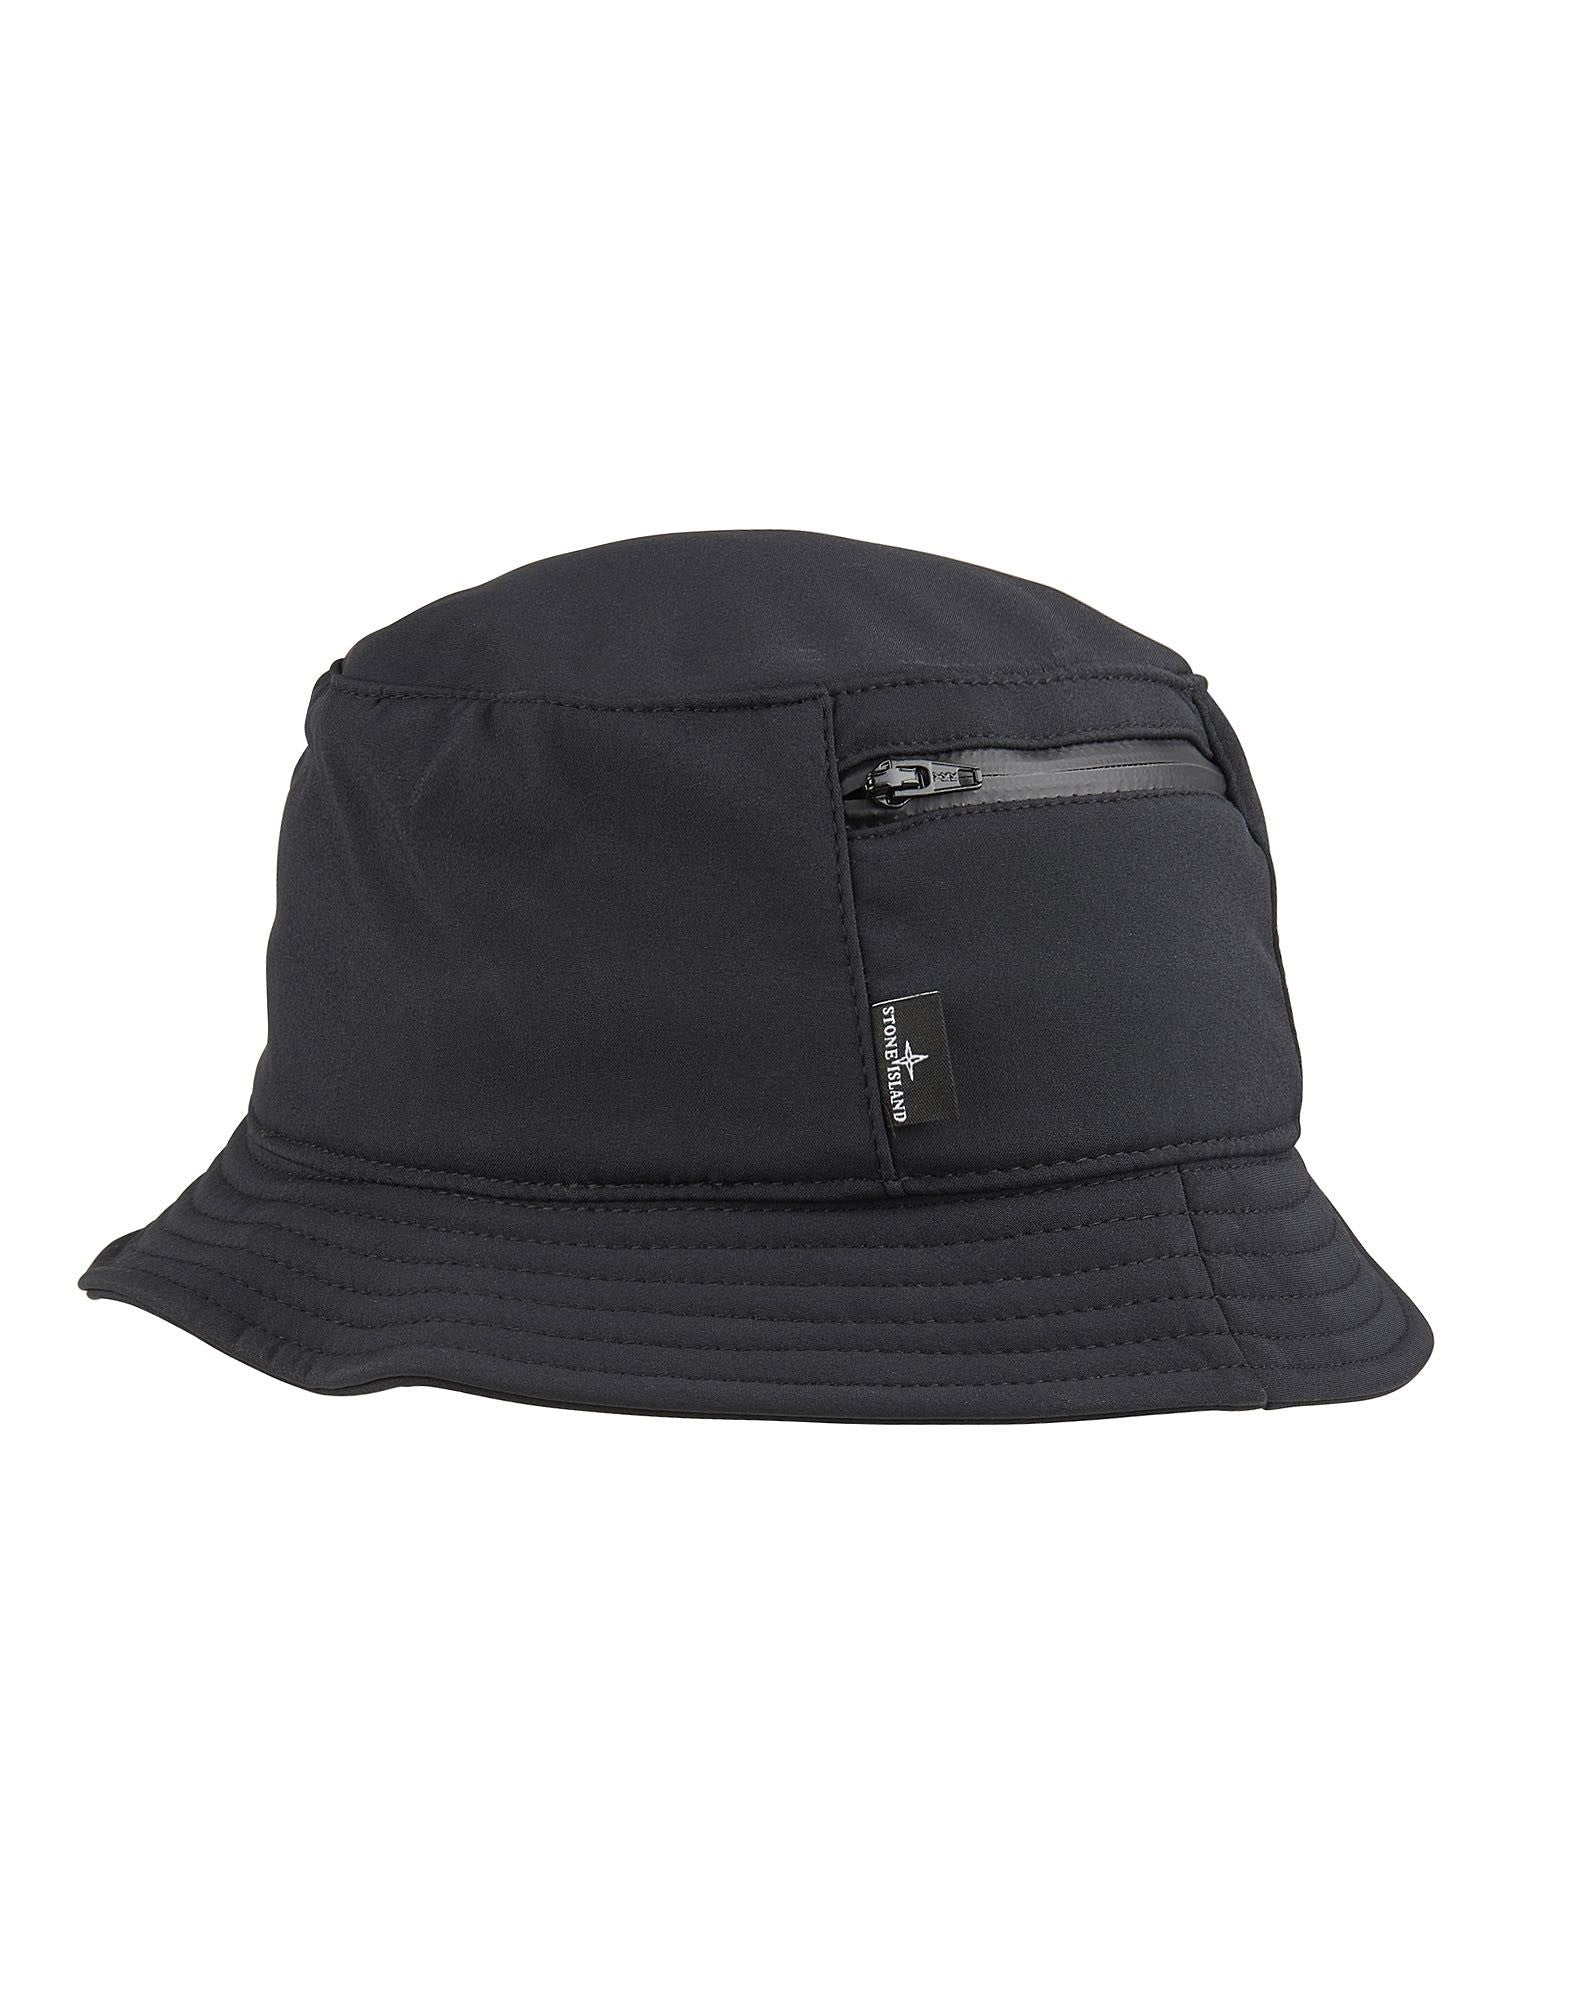 99279 SOFT SHELL-R Bucket Hat in Black